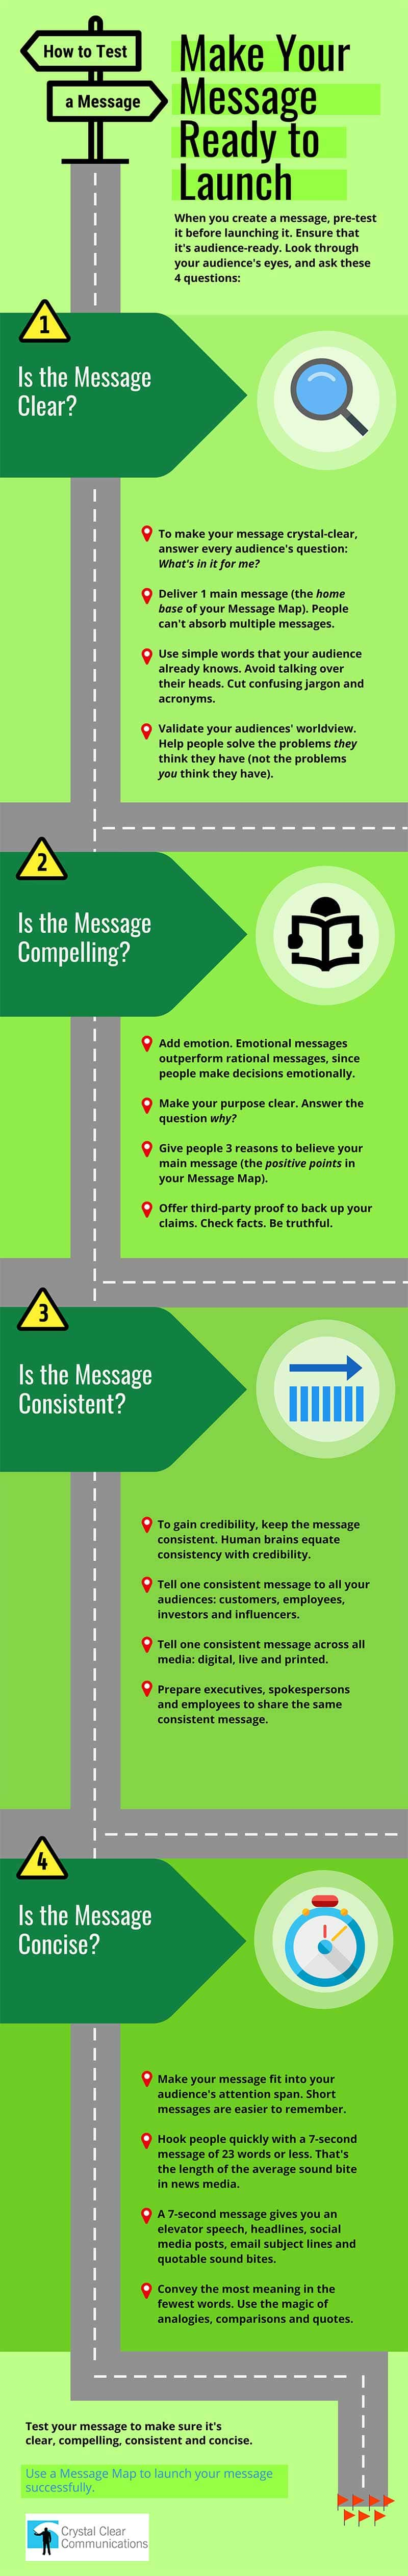 infographic - how to test a message